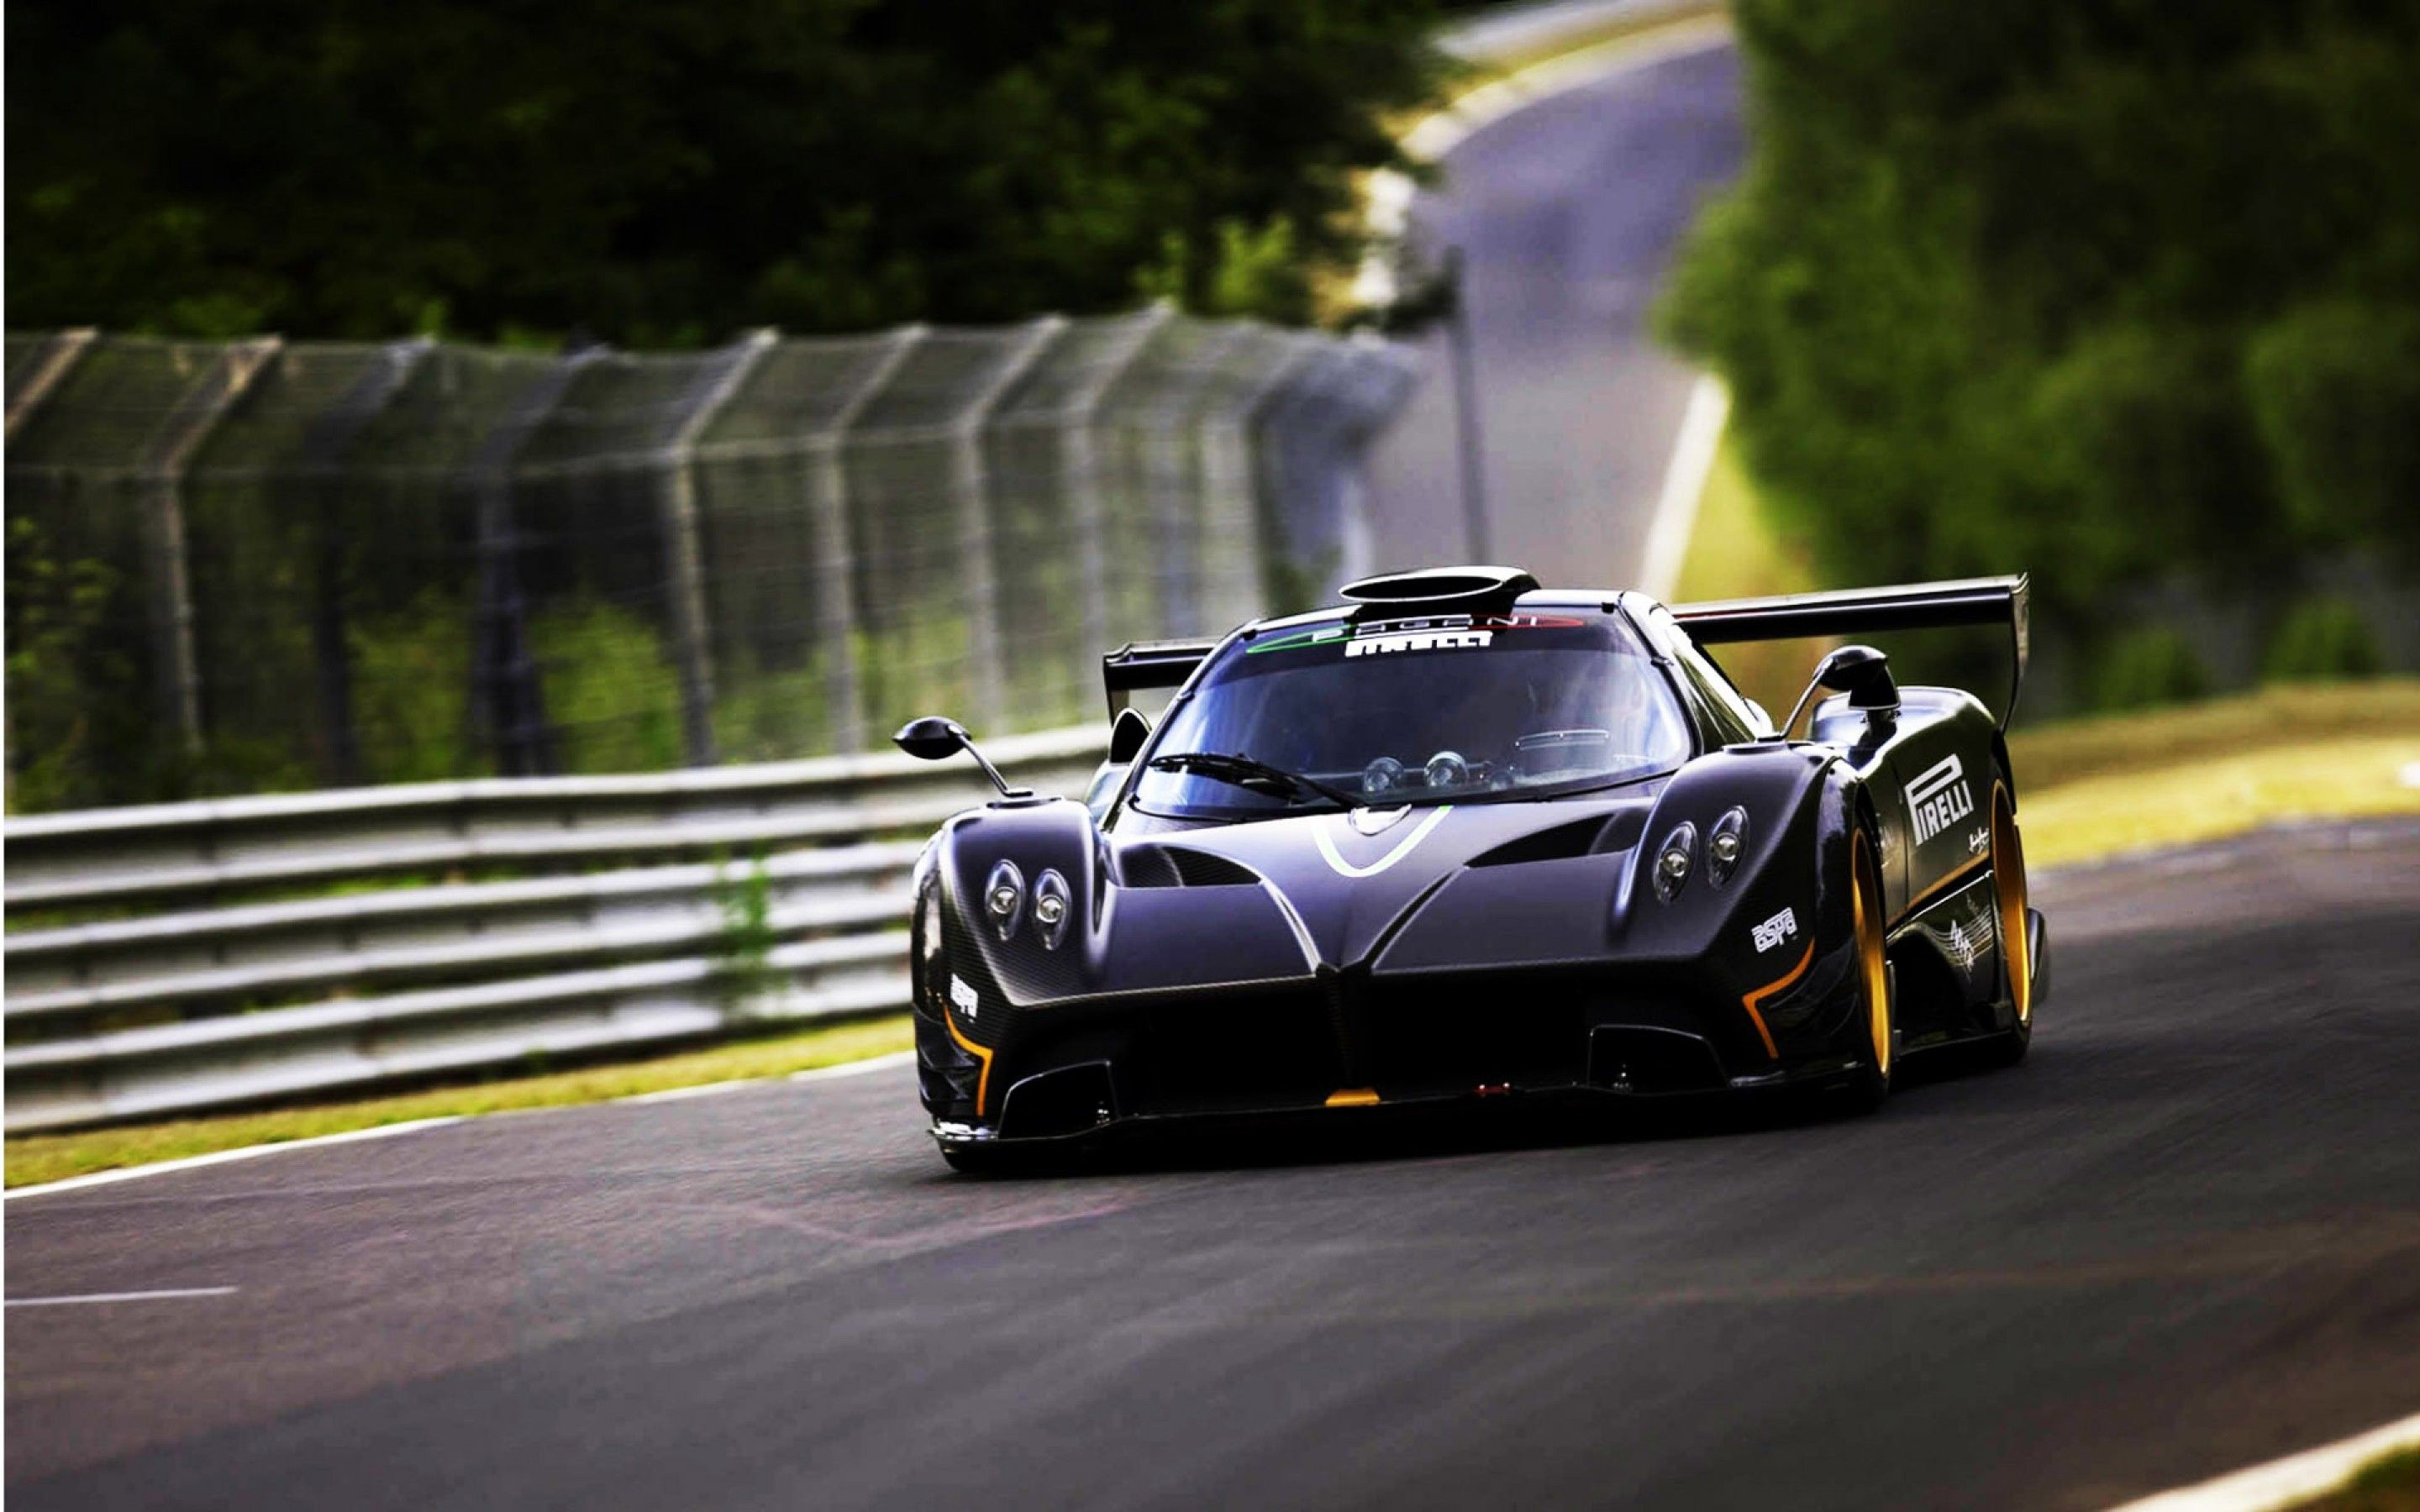 2880x1800 140 Pagani Zonda HD Wallpapers | Backgrounds - Wallpaper Abyss